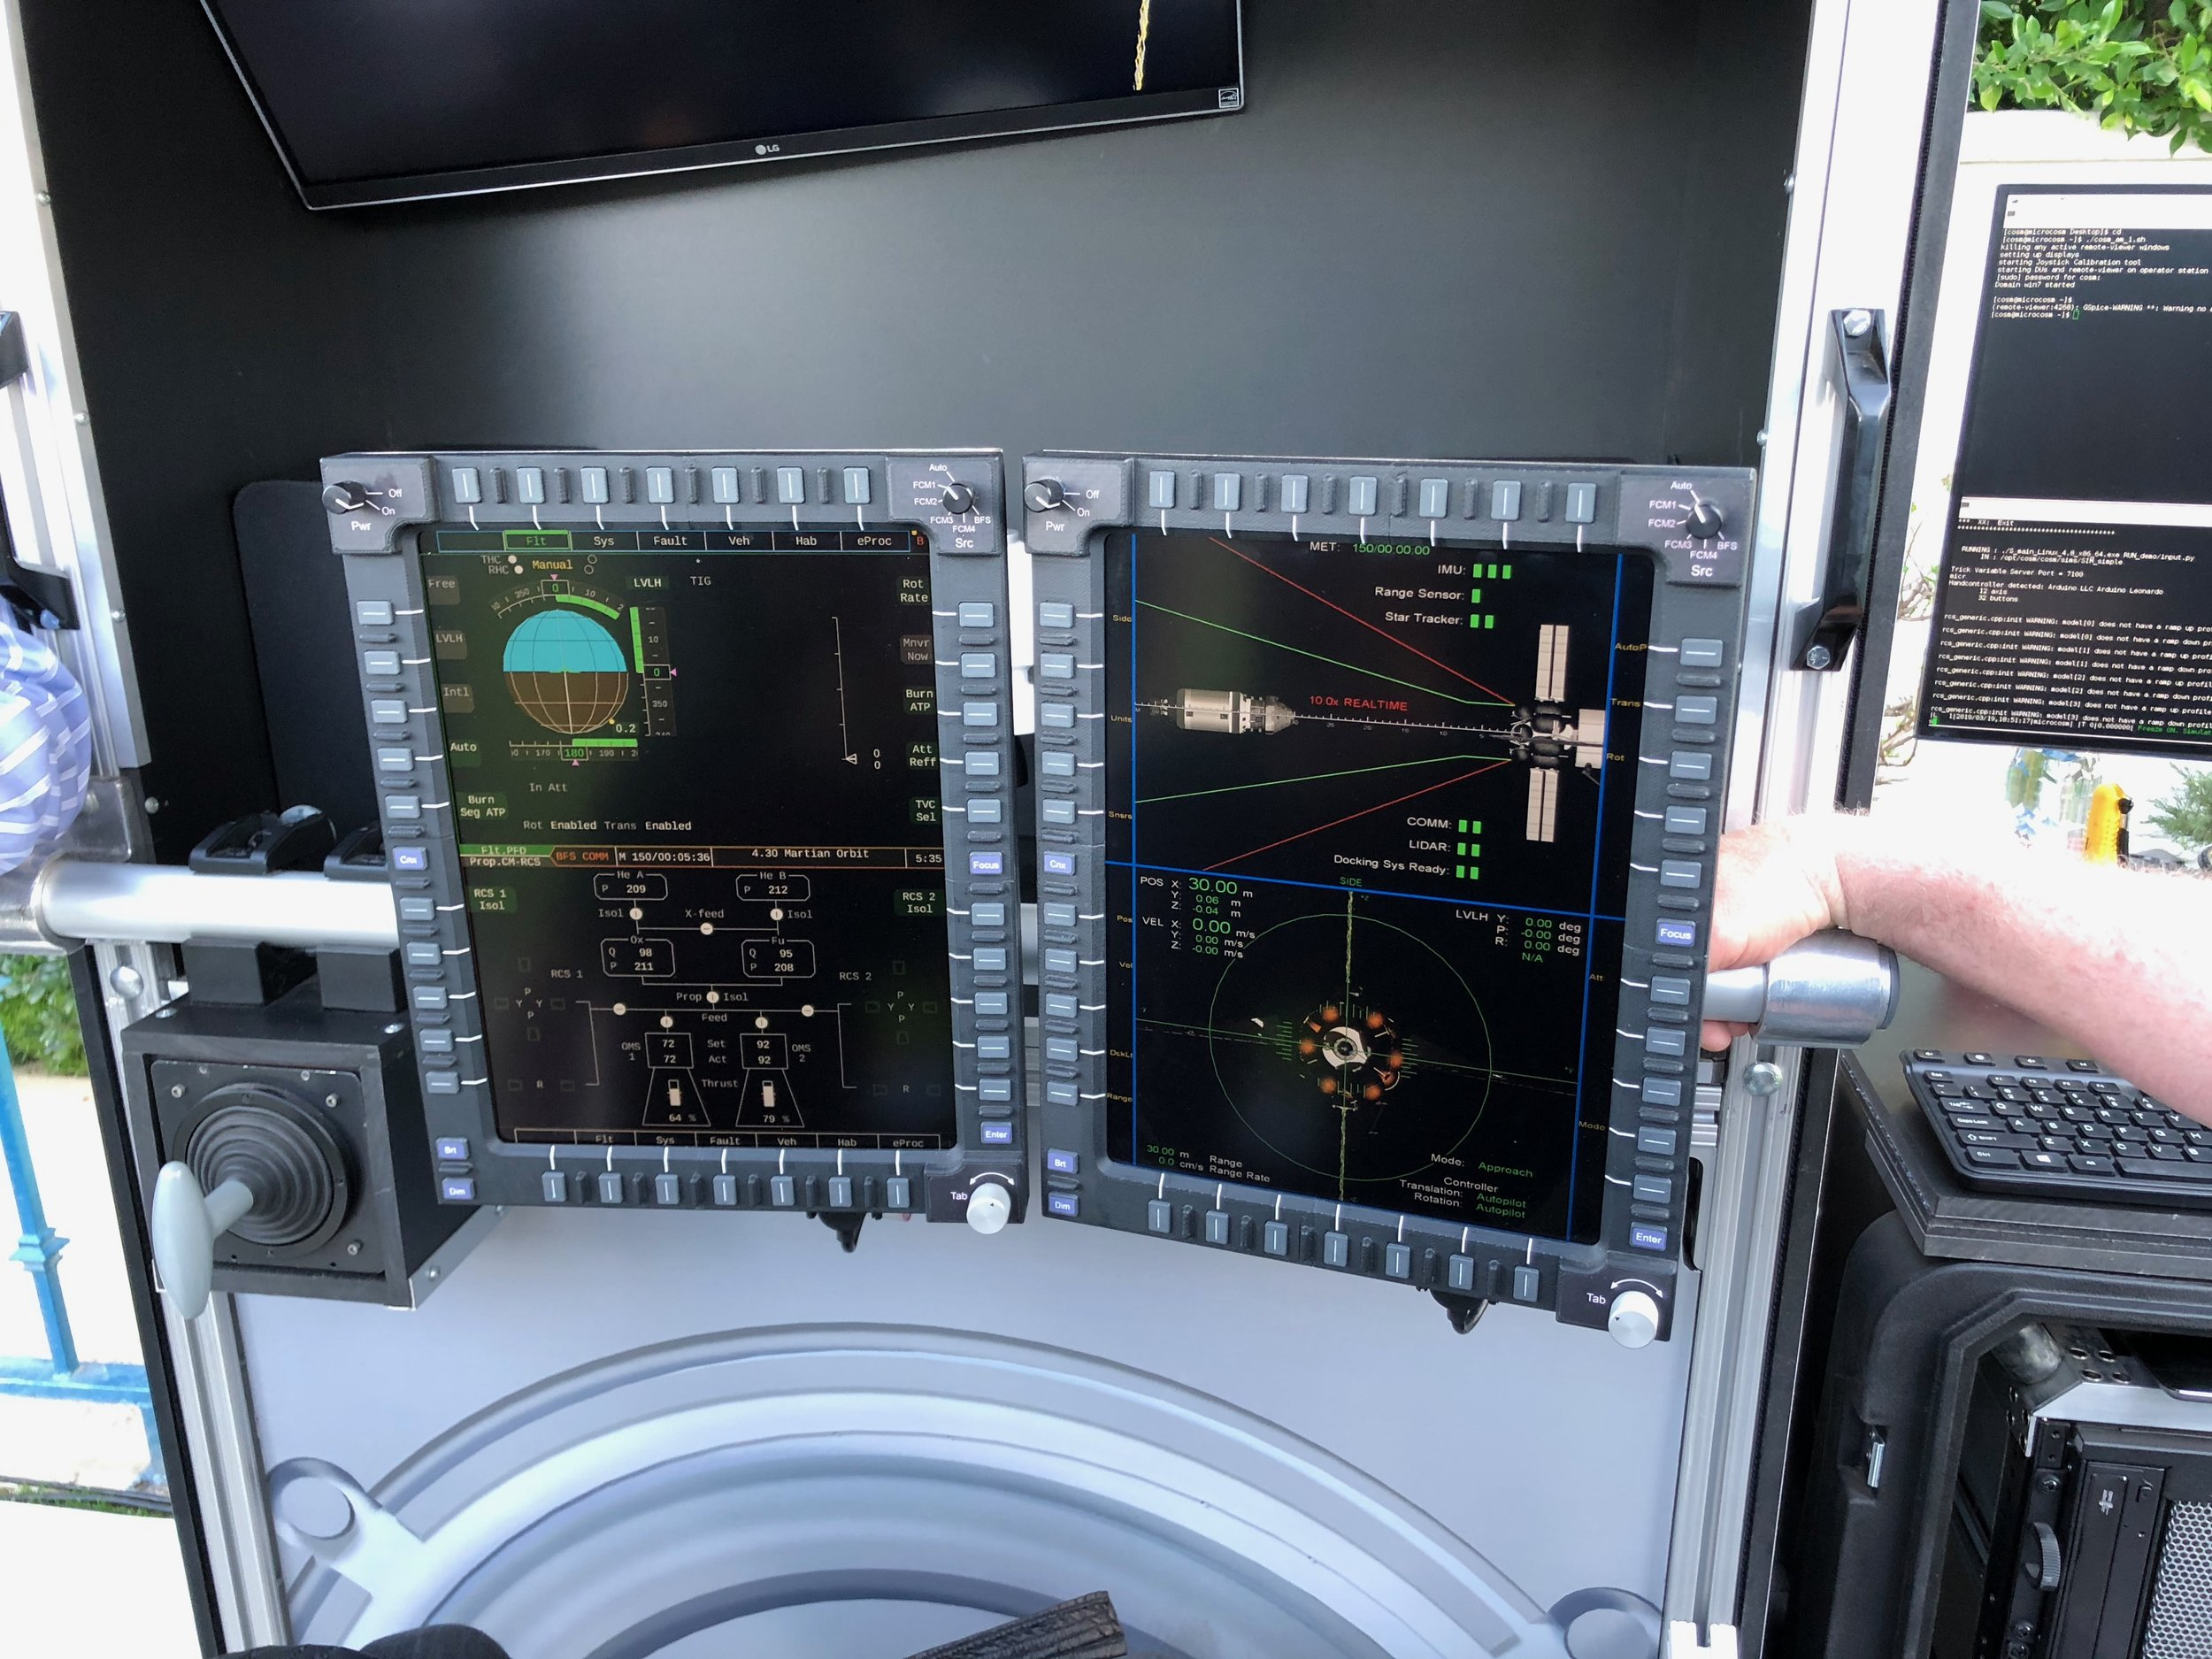 Origin docking simulator - courtesy of Lockheed Martin